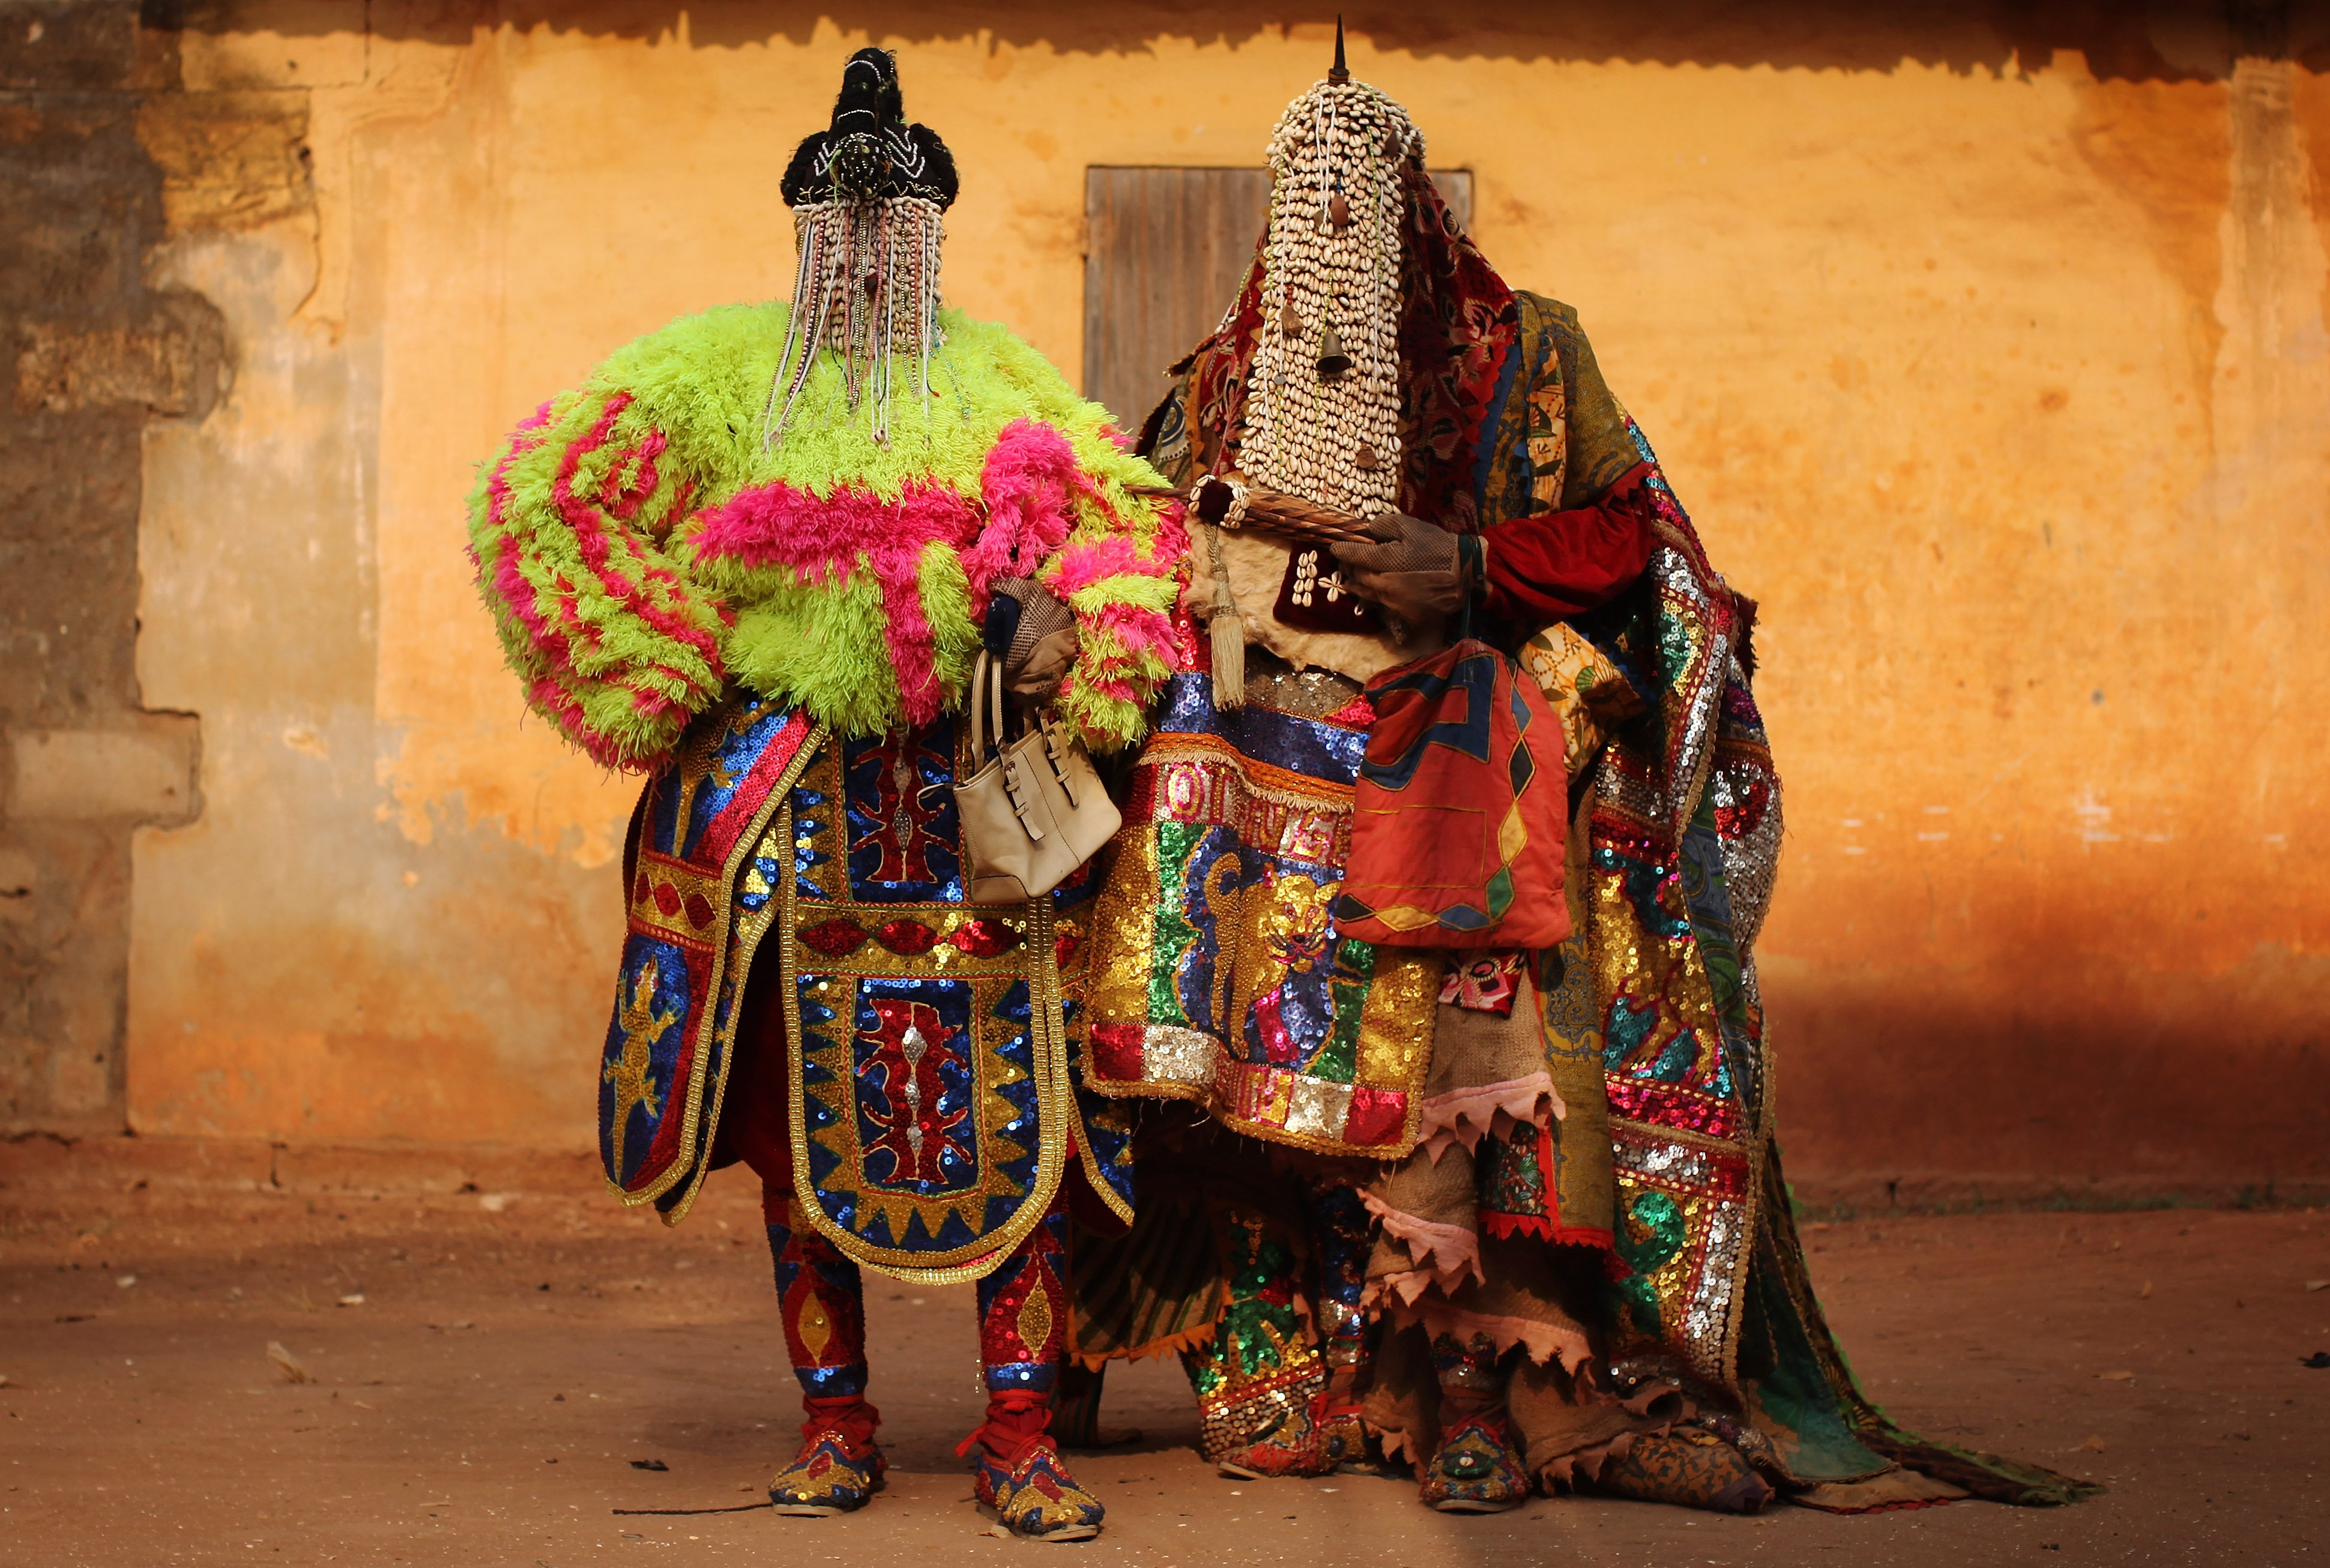 Voodoo Festival, Ouidah, Benin, Africa, Tribe, Festival, Crooked Compass